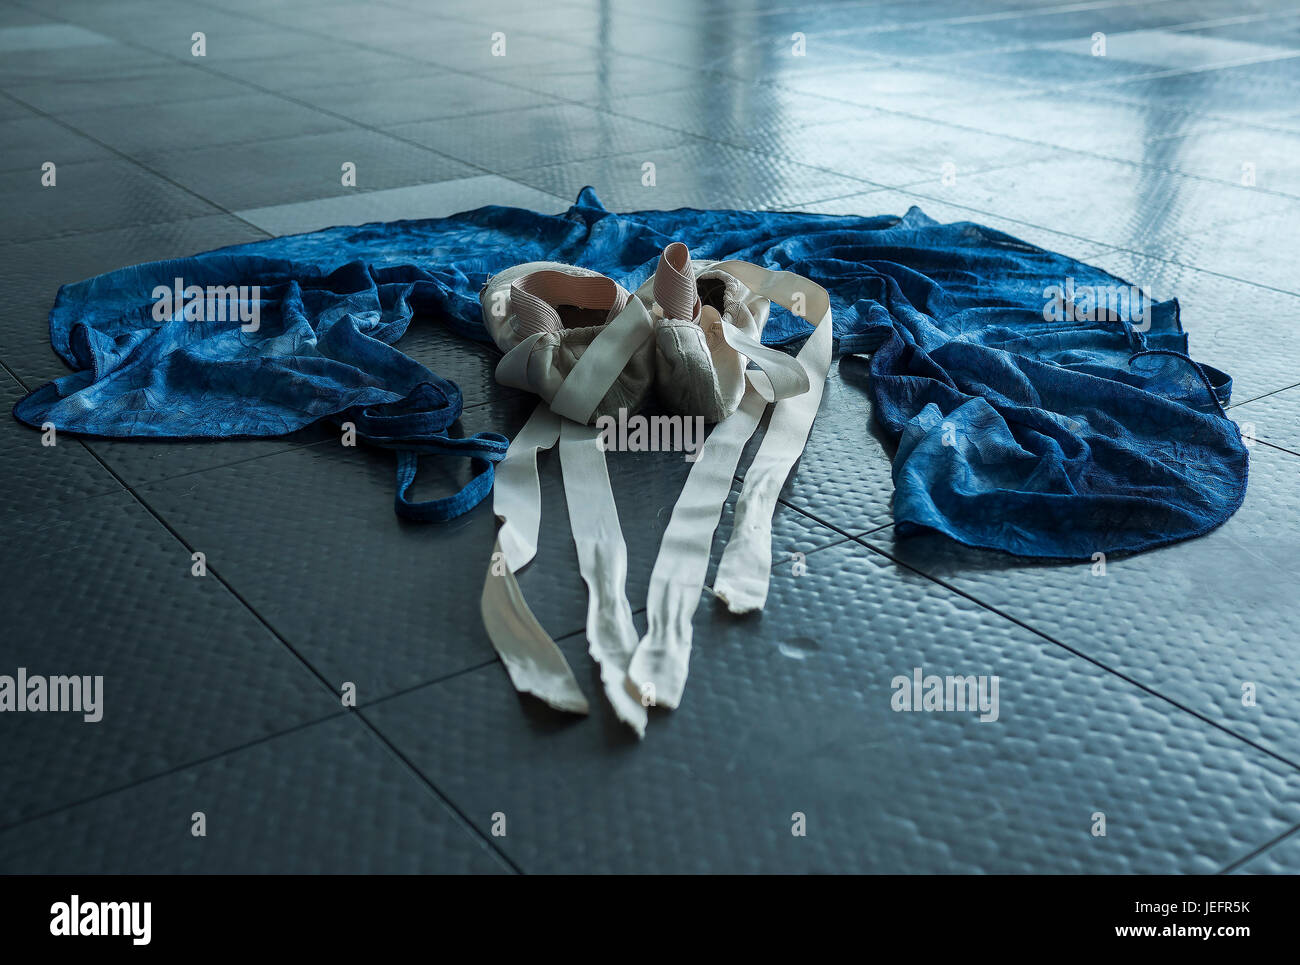 A ballet dancer's ballet pointe shoes and her practice wrap skirt - Stock Image